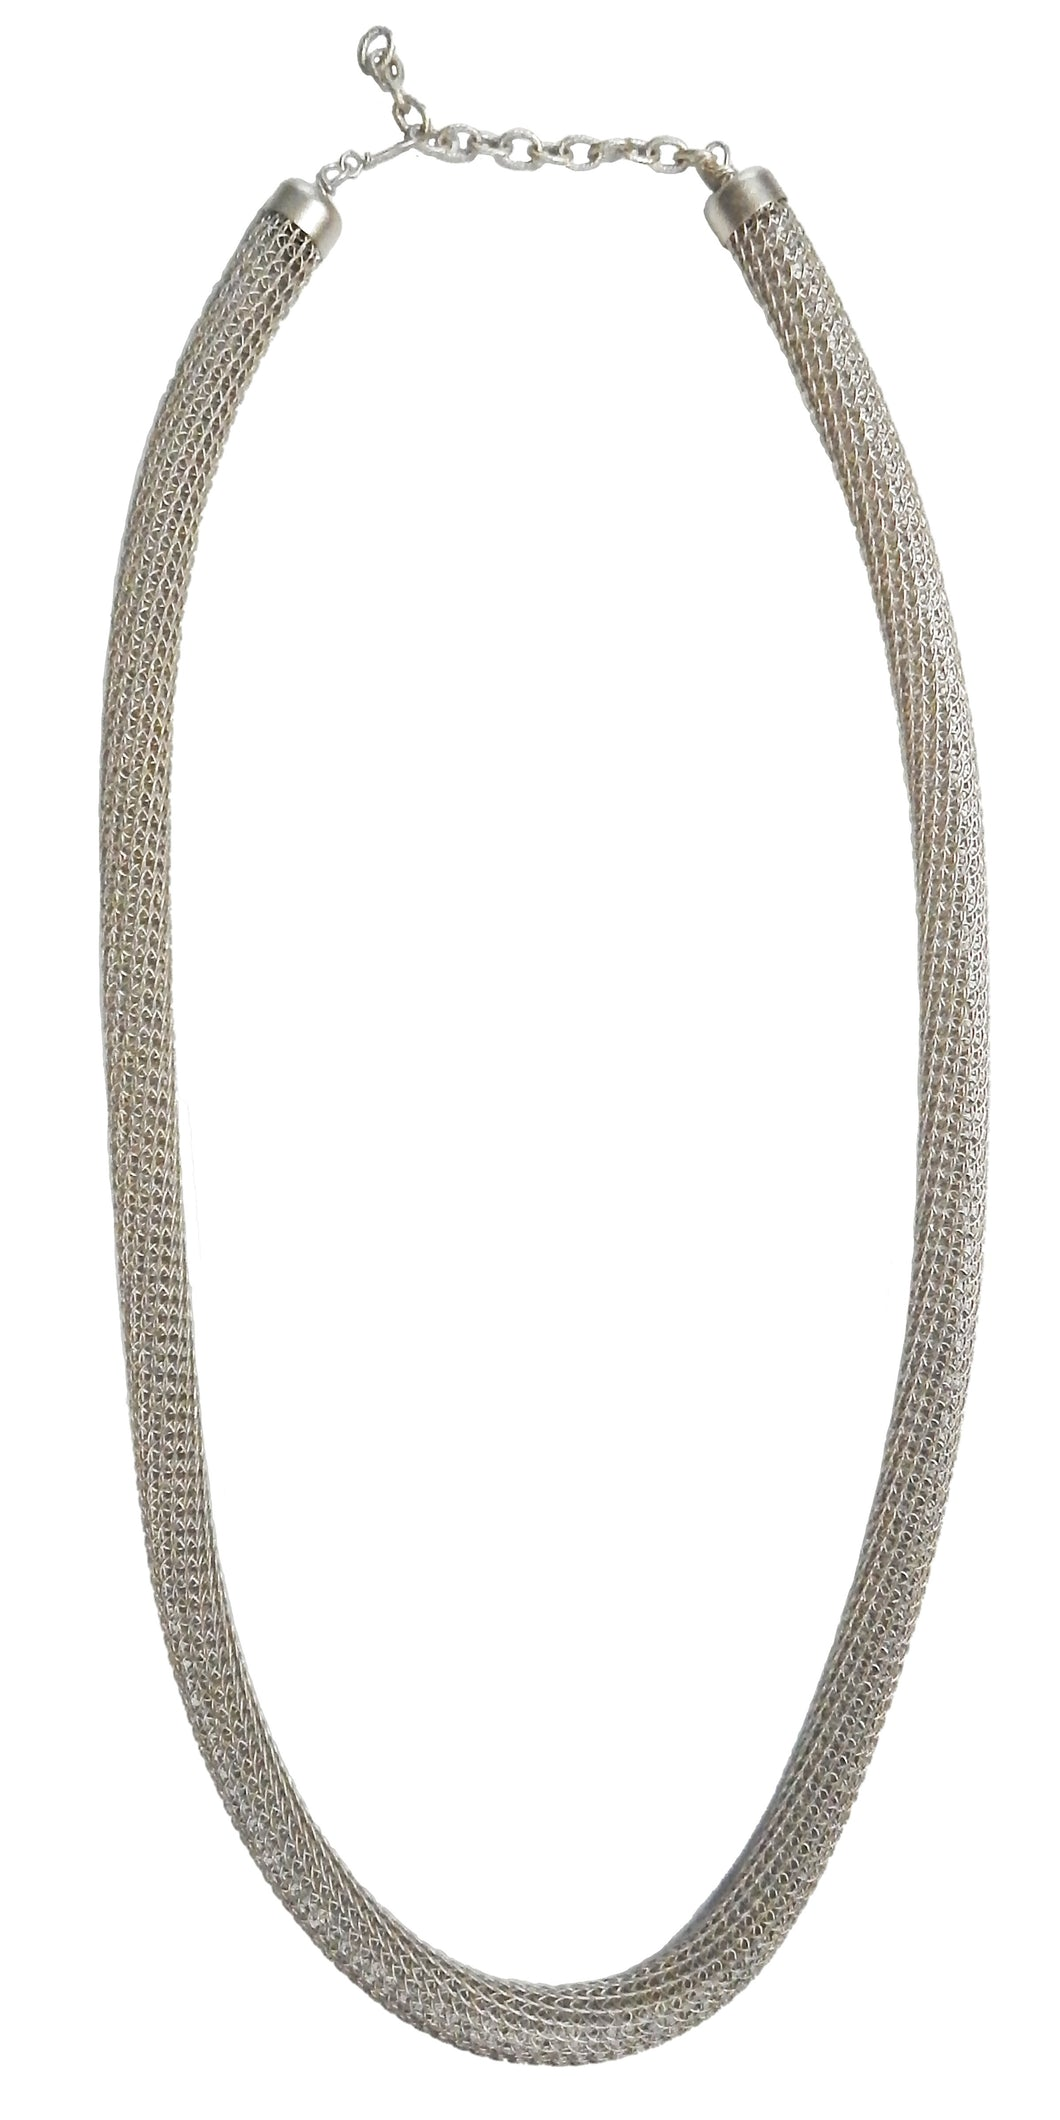 Contemporary Knotted Viking Knit Necklace - Silver Alloy